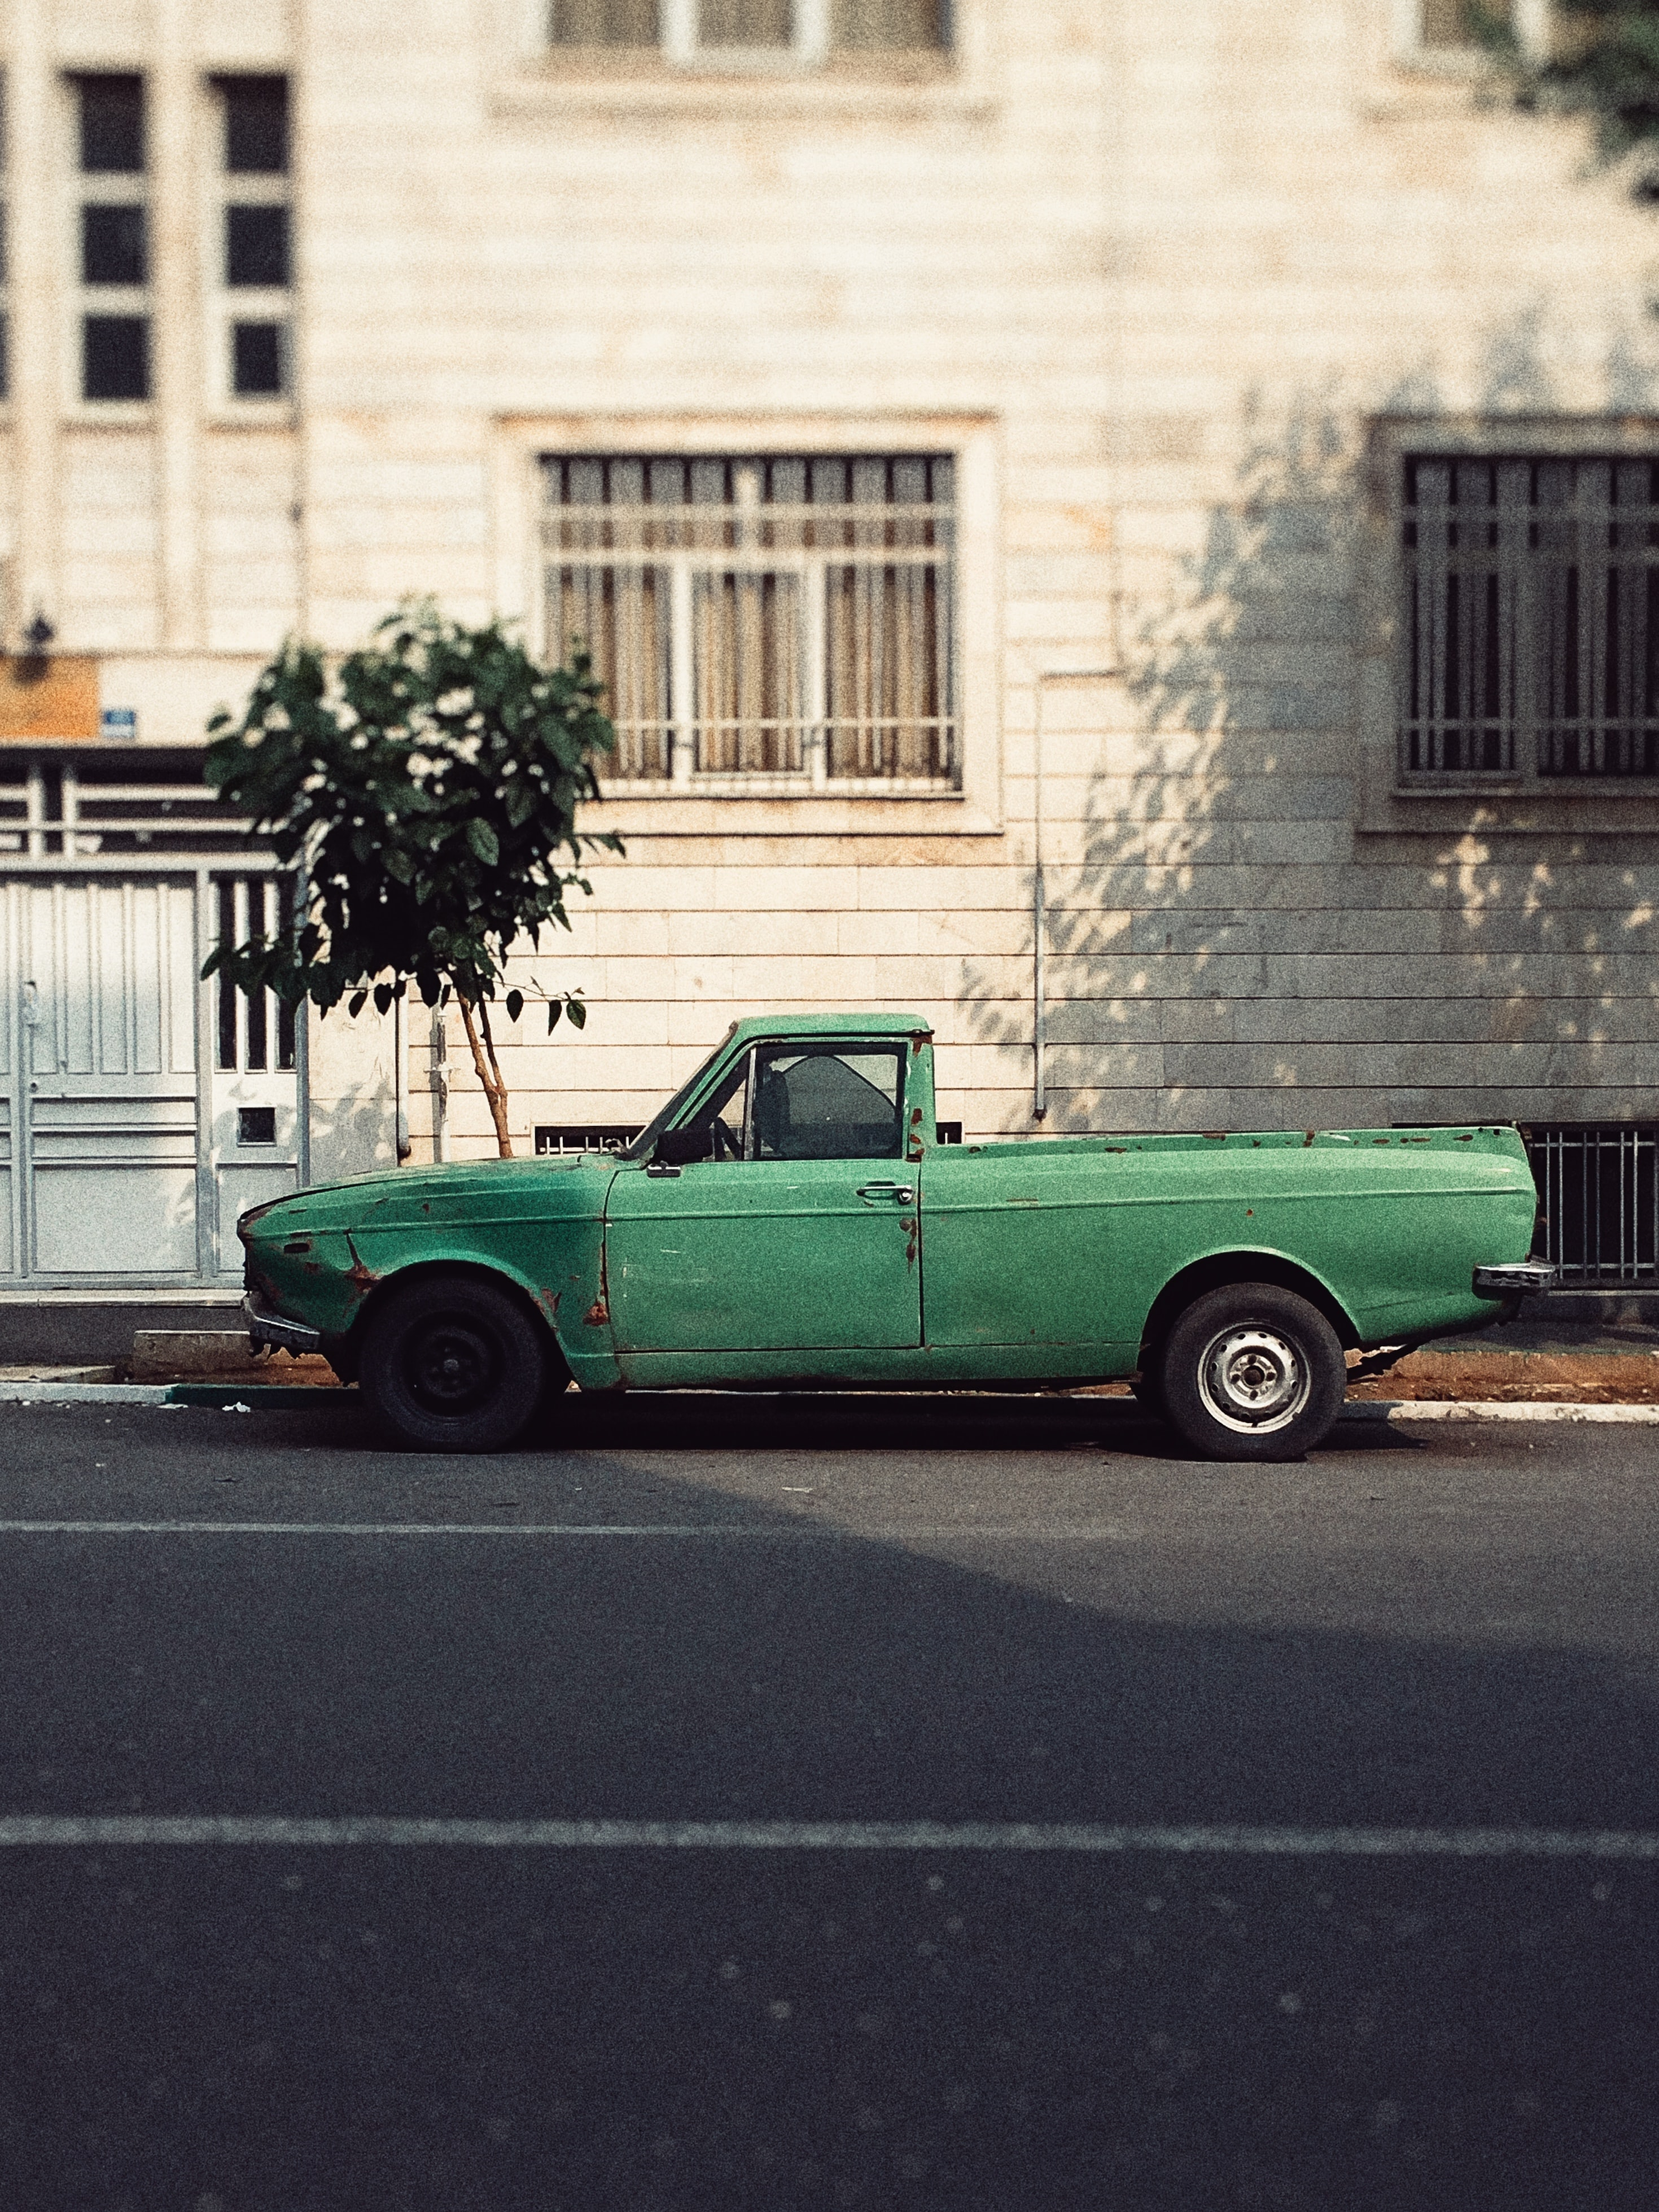 green single cab pickup truck parked beside building